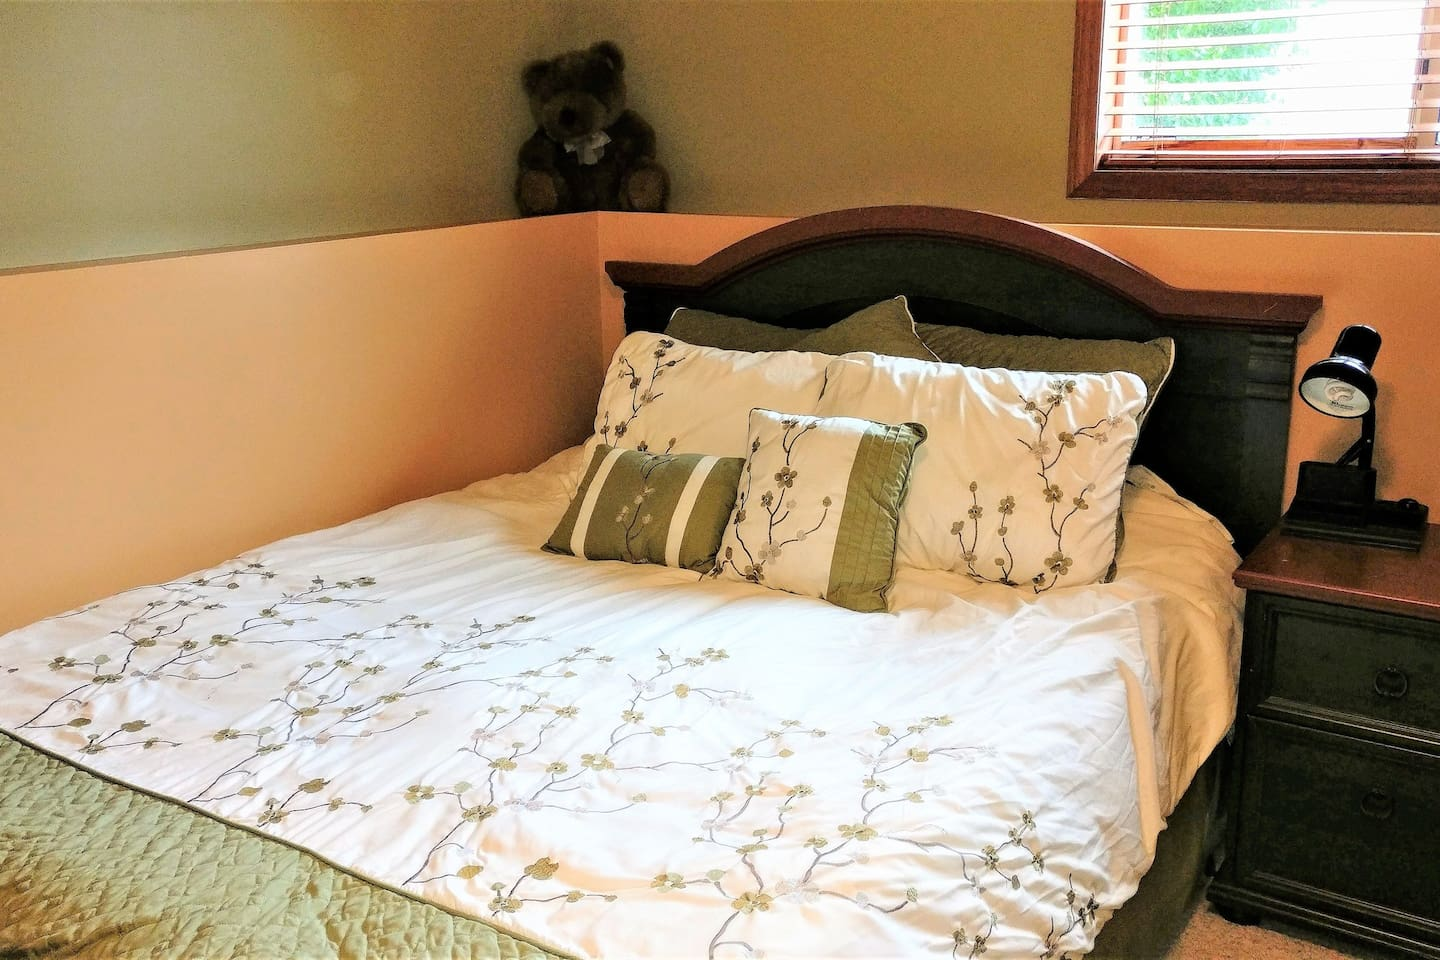 Super comfy queen-sized bed with goose feather duvet.  Blankets and other bedding are available if you have allergies.  The bedroom is on the lower floor so you have the entire space to yourself.